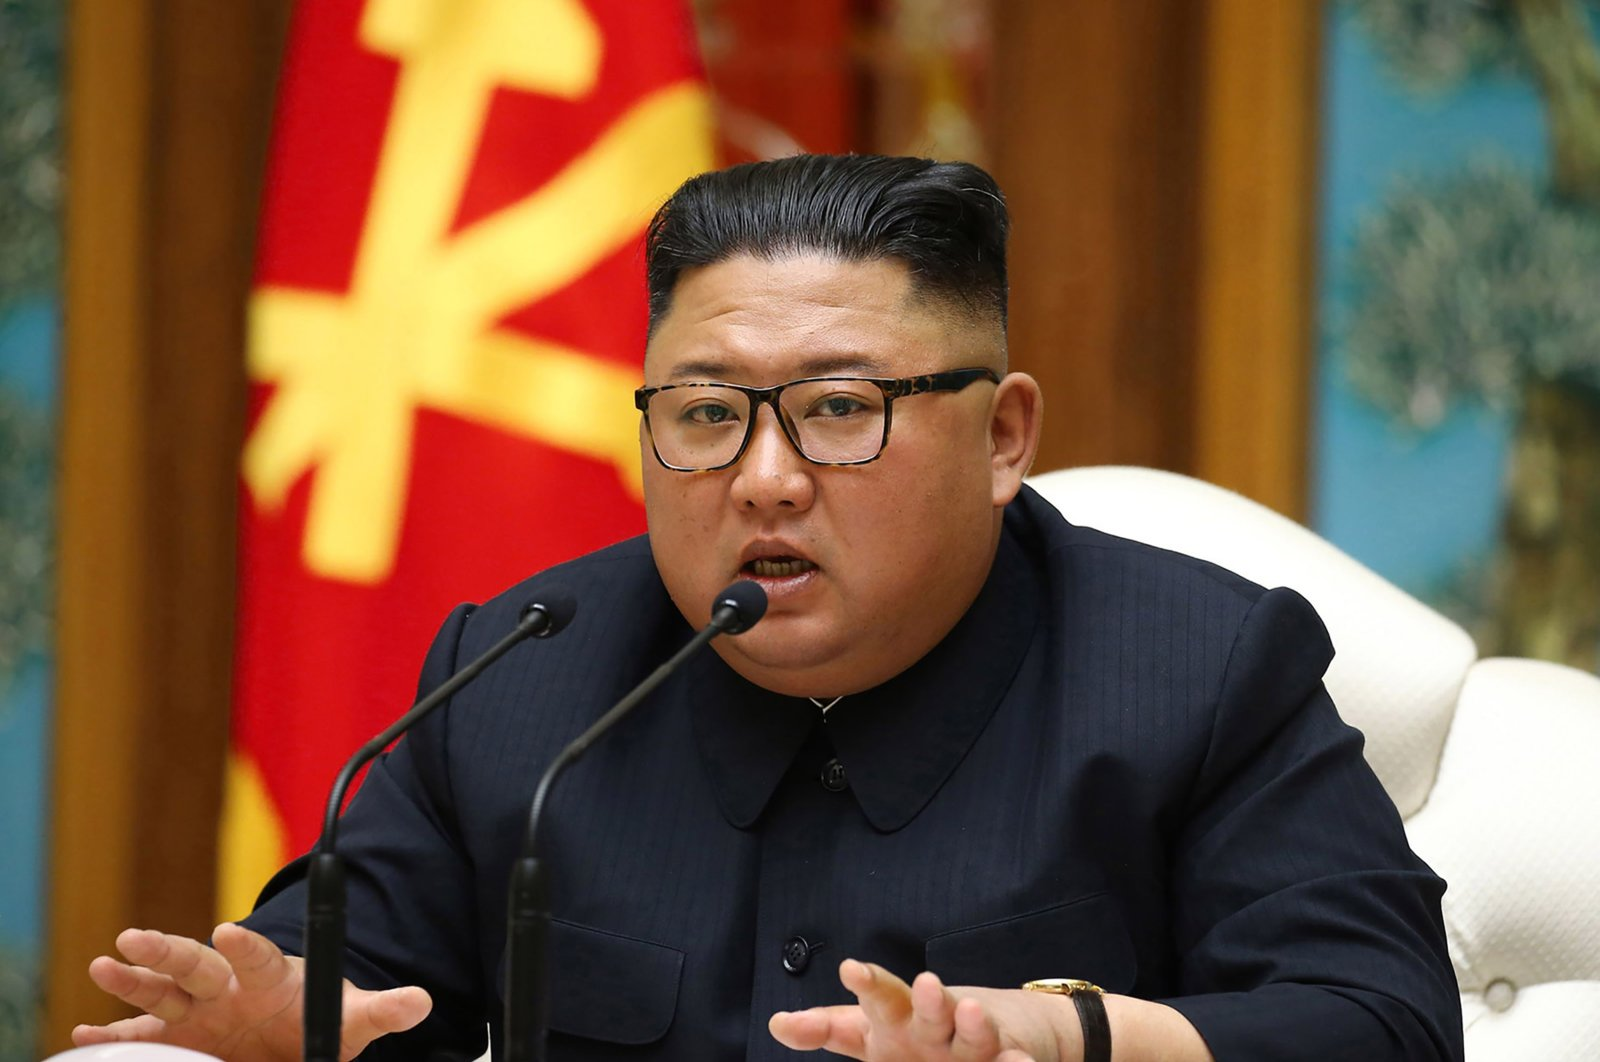 North Korean leader Kim Jong Un speaks during a meeting of the Political Bureau of the Central Committee of the Workers' Party of Korea (WPK), Pyongyang, North Korea, April 11, 2020. (AFP Photo)